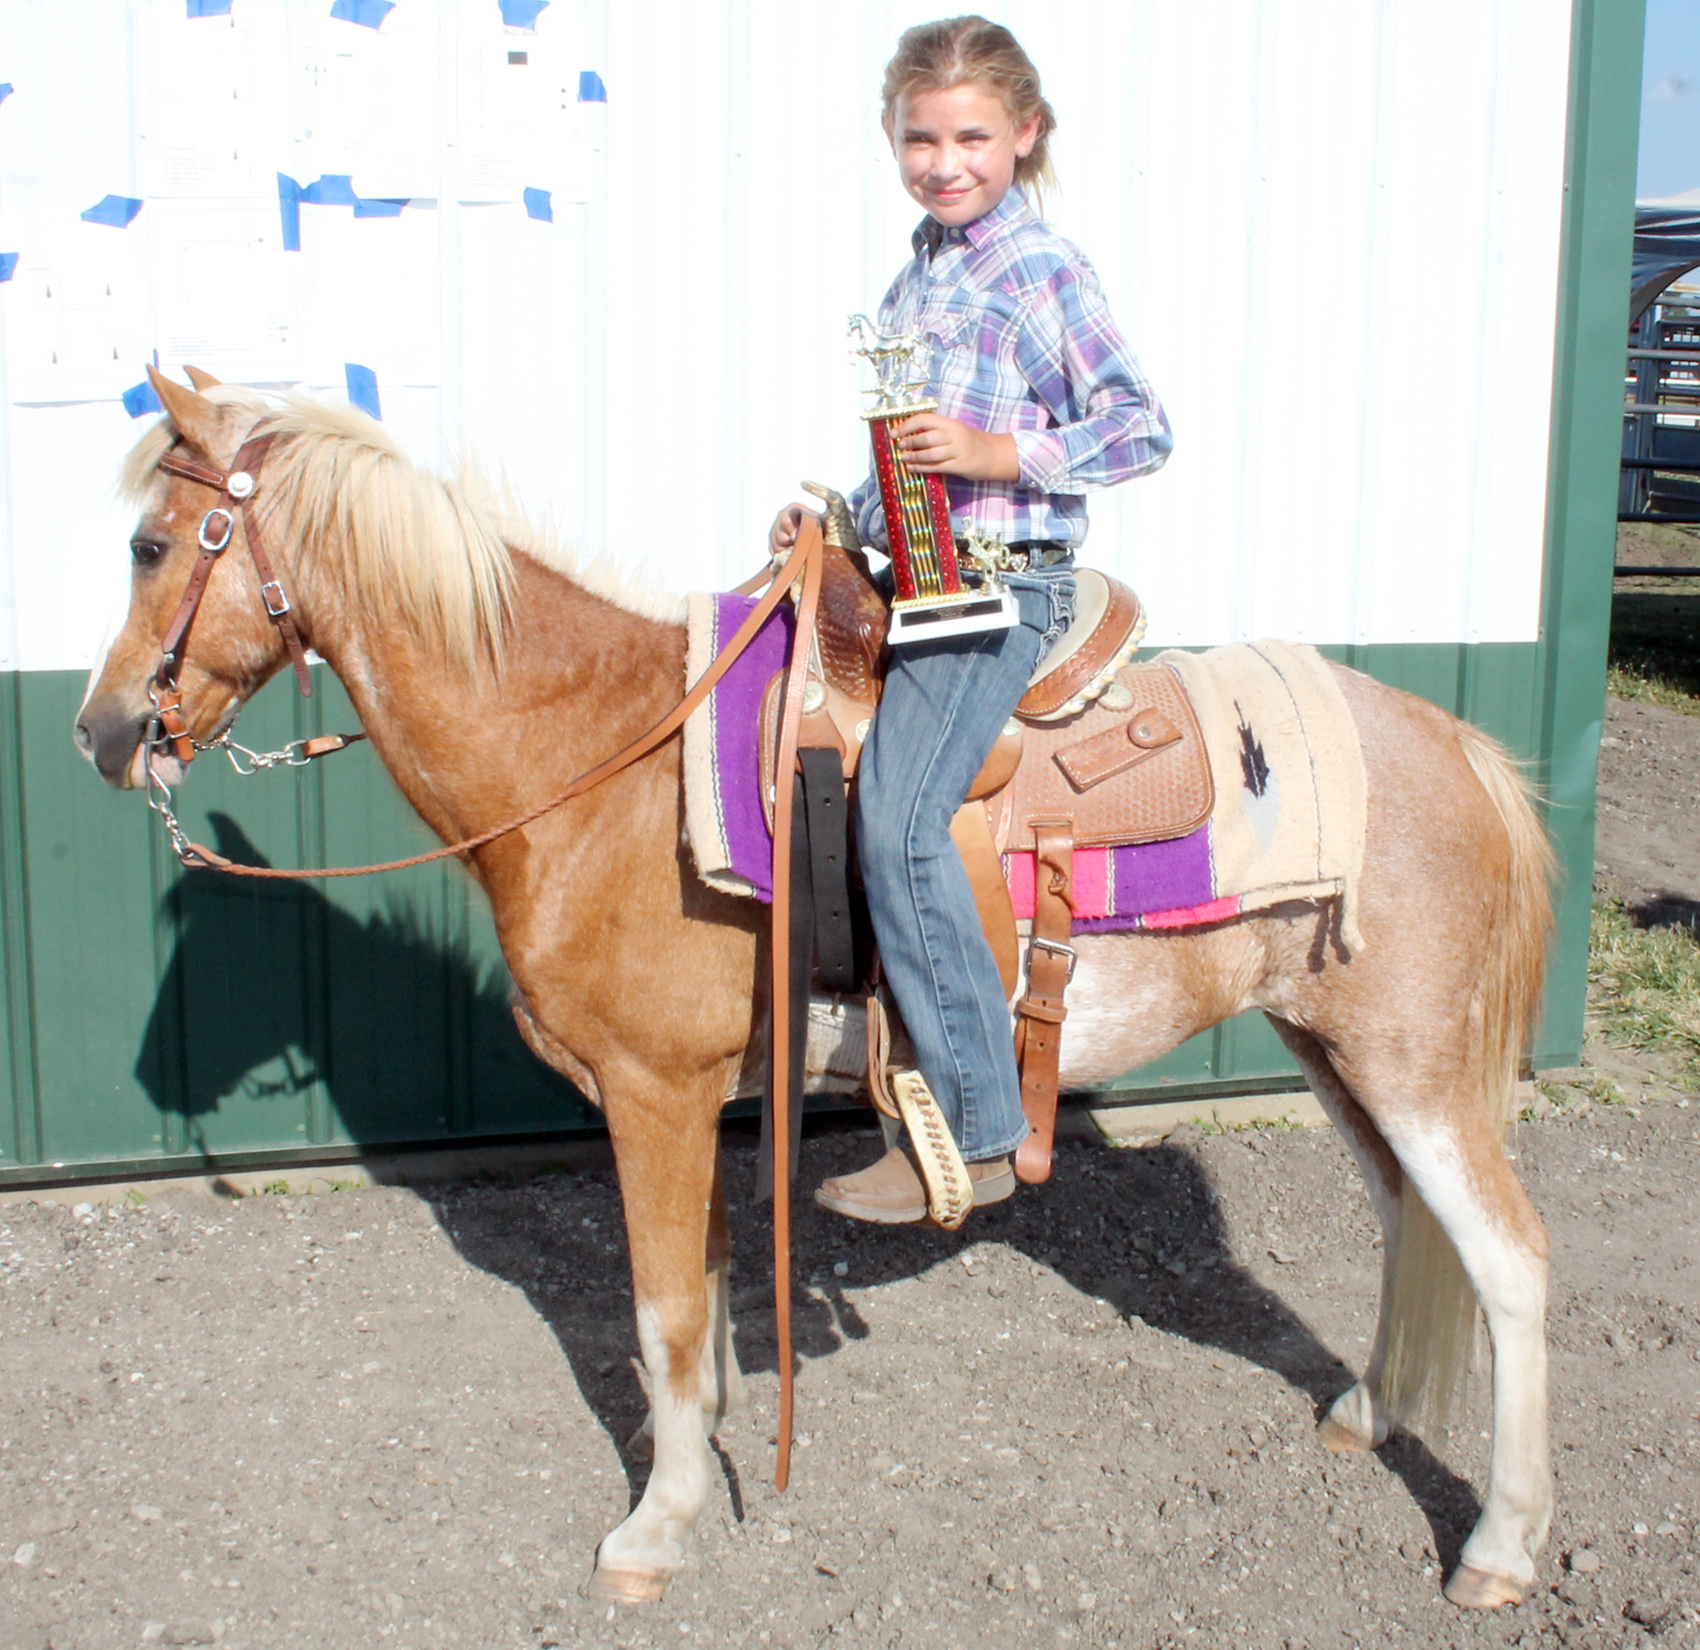 Cally Stephens won the walk-trot and horsemanship competitions in the 7-9 age group at this year's horse show. She is a member of the Denison Builders 4-H club.